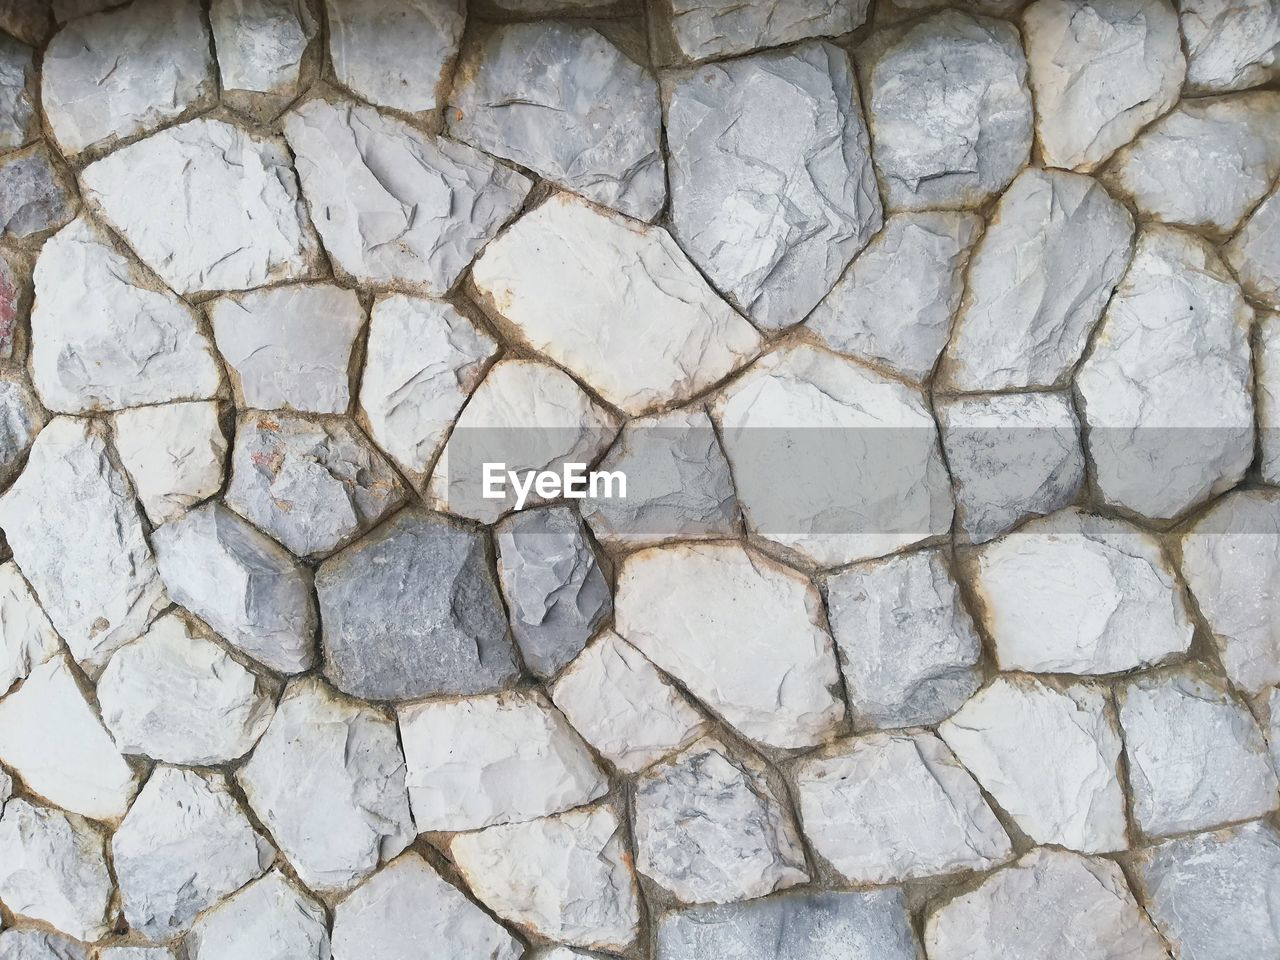 backgrounds, full frame, no people, pattern, solid, textured, stone material, close-up, stone wall, day, rough, nature, outdoors, gray, directly above, stone, stone - object, high angle view, wall, architecture, tiled floor, concrete